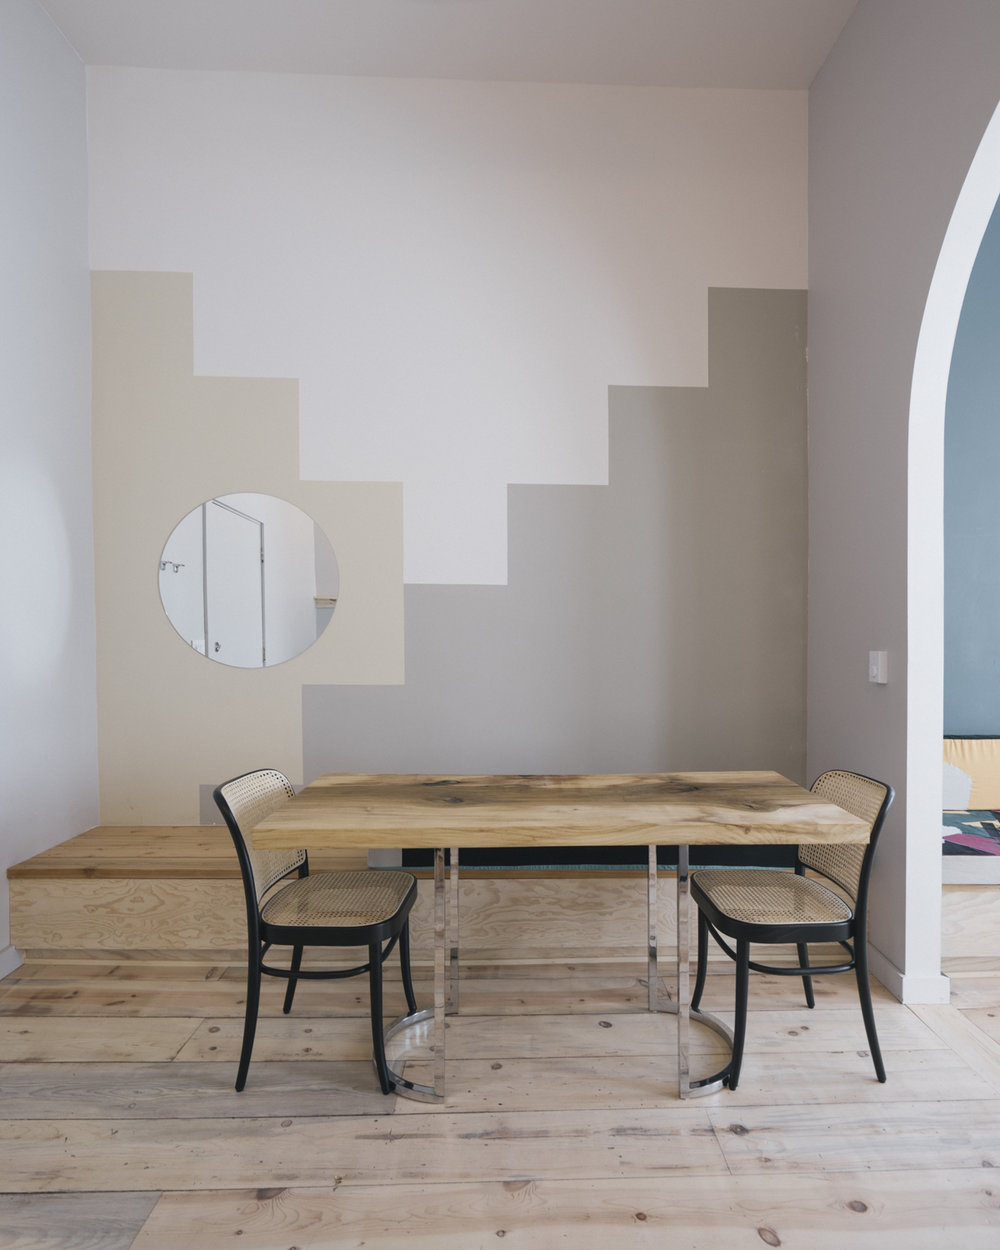 The geometric wall mural and custom table designed by Shelter Collective